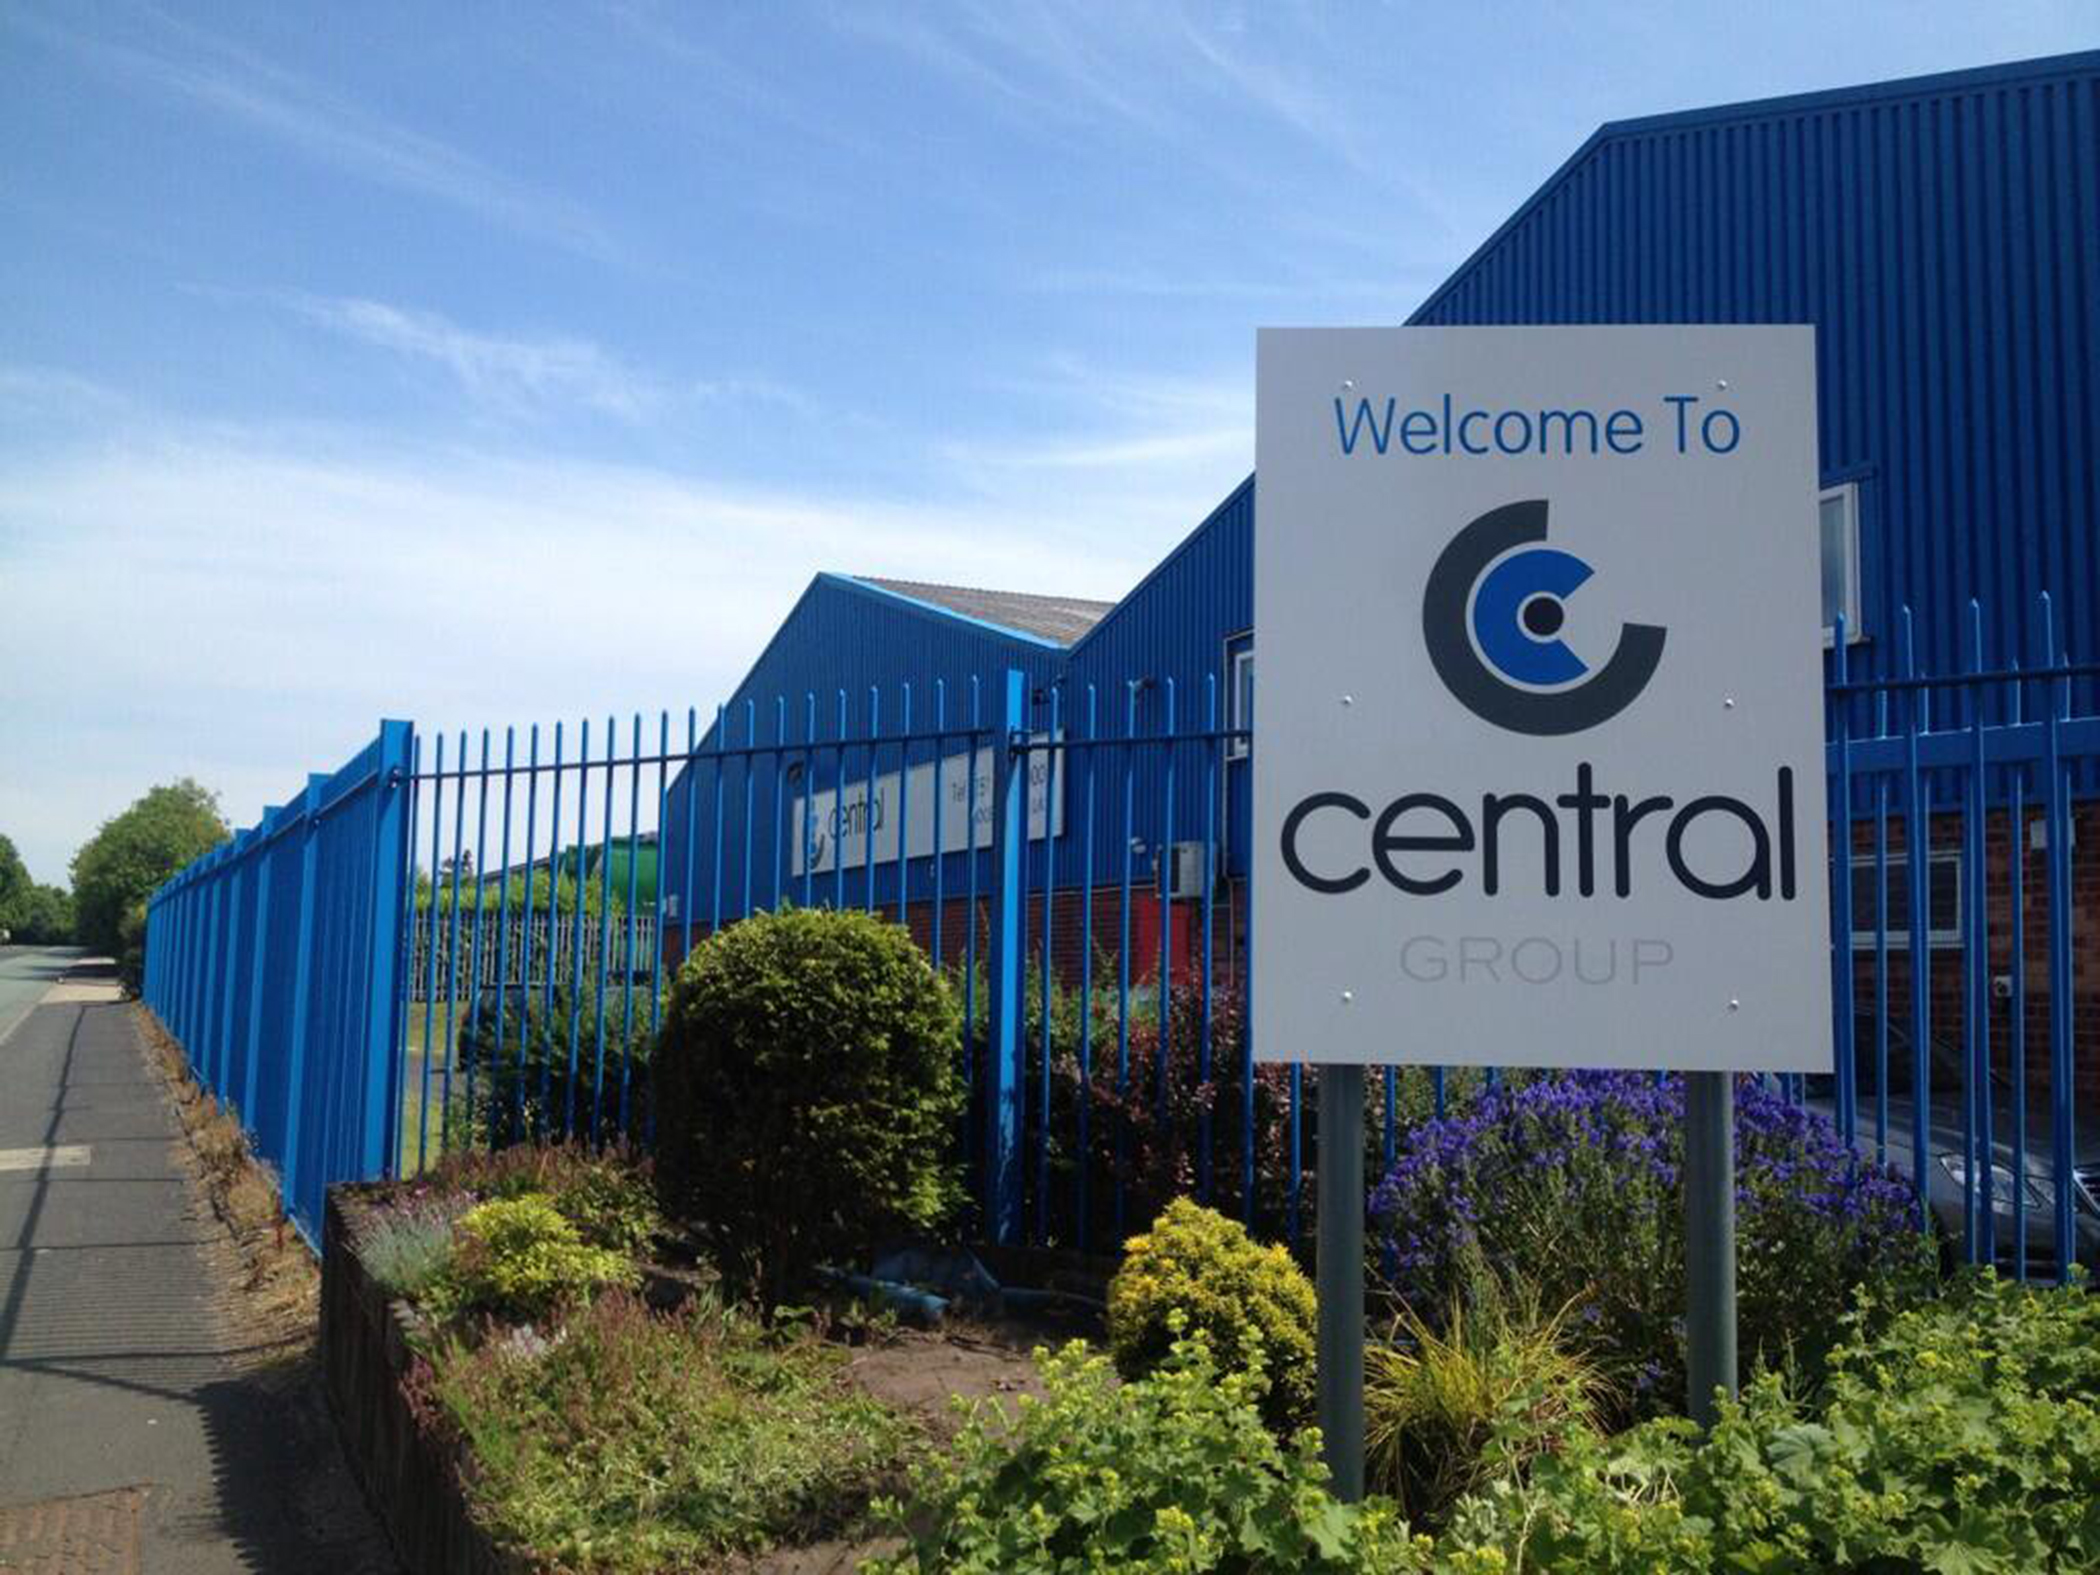 Central Group: The Industrial Emergency Service